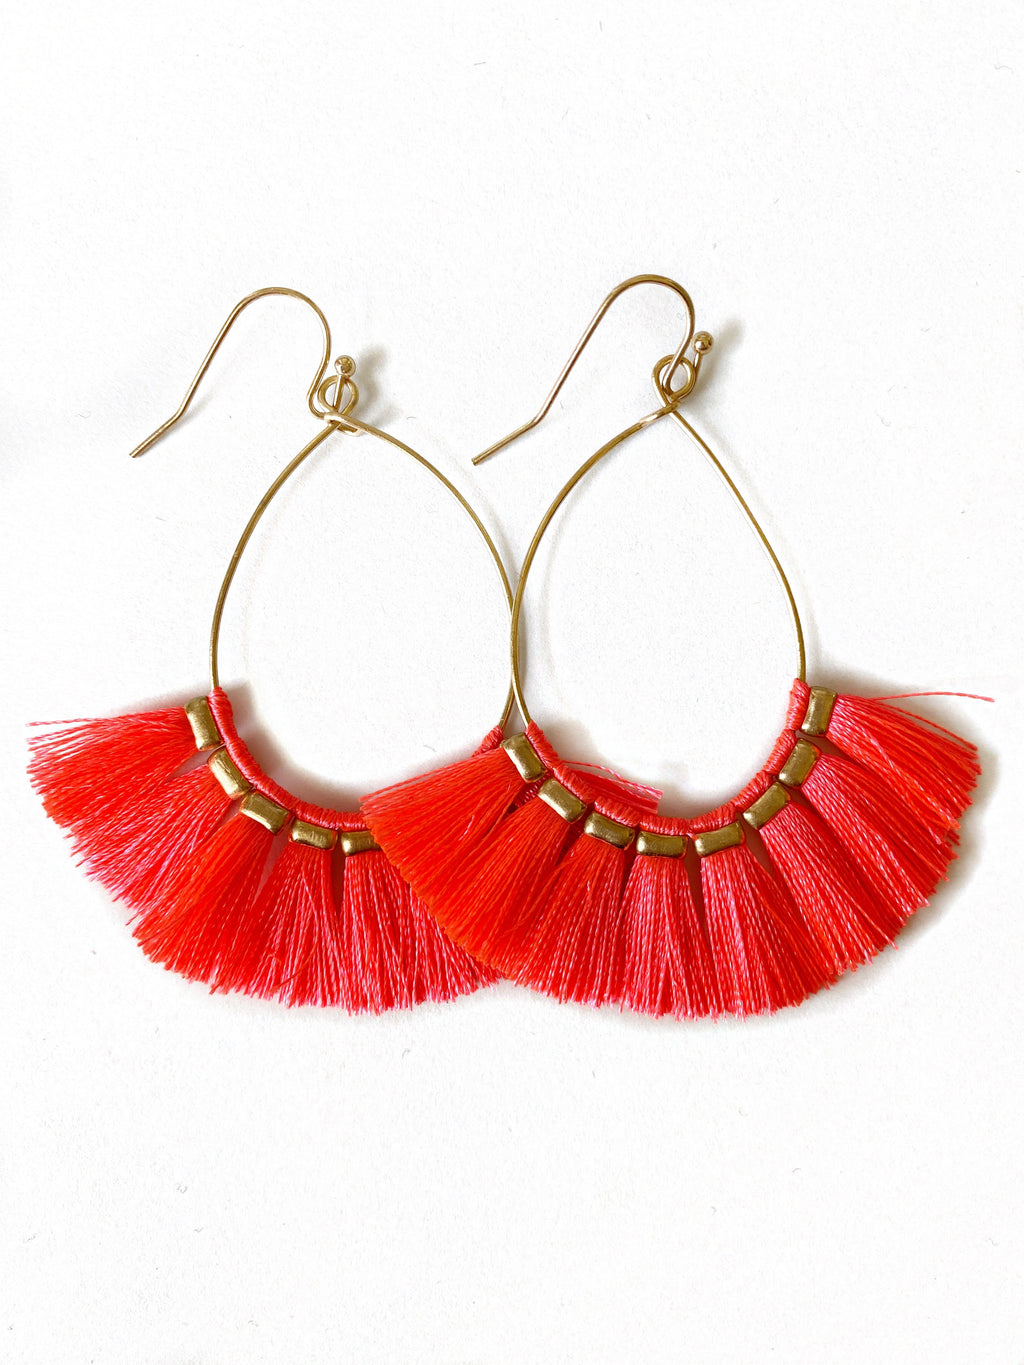 Ashley Fringe Earrings in Hot Pink